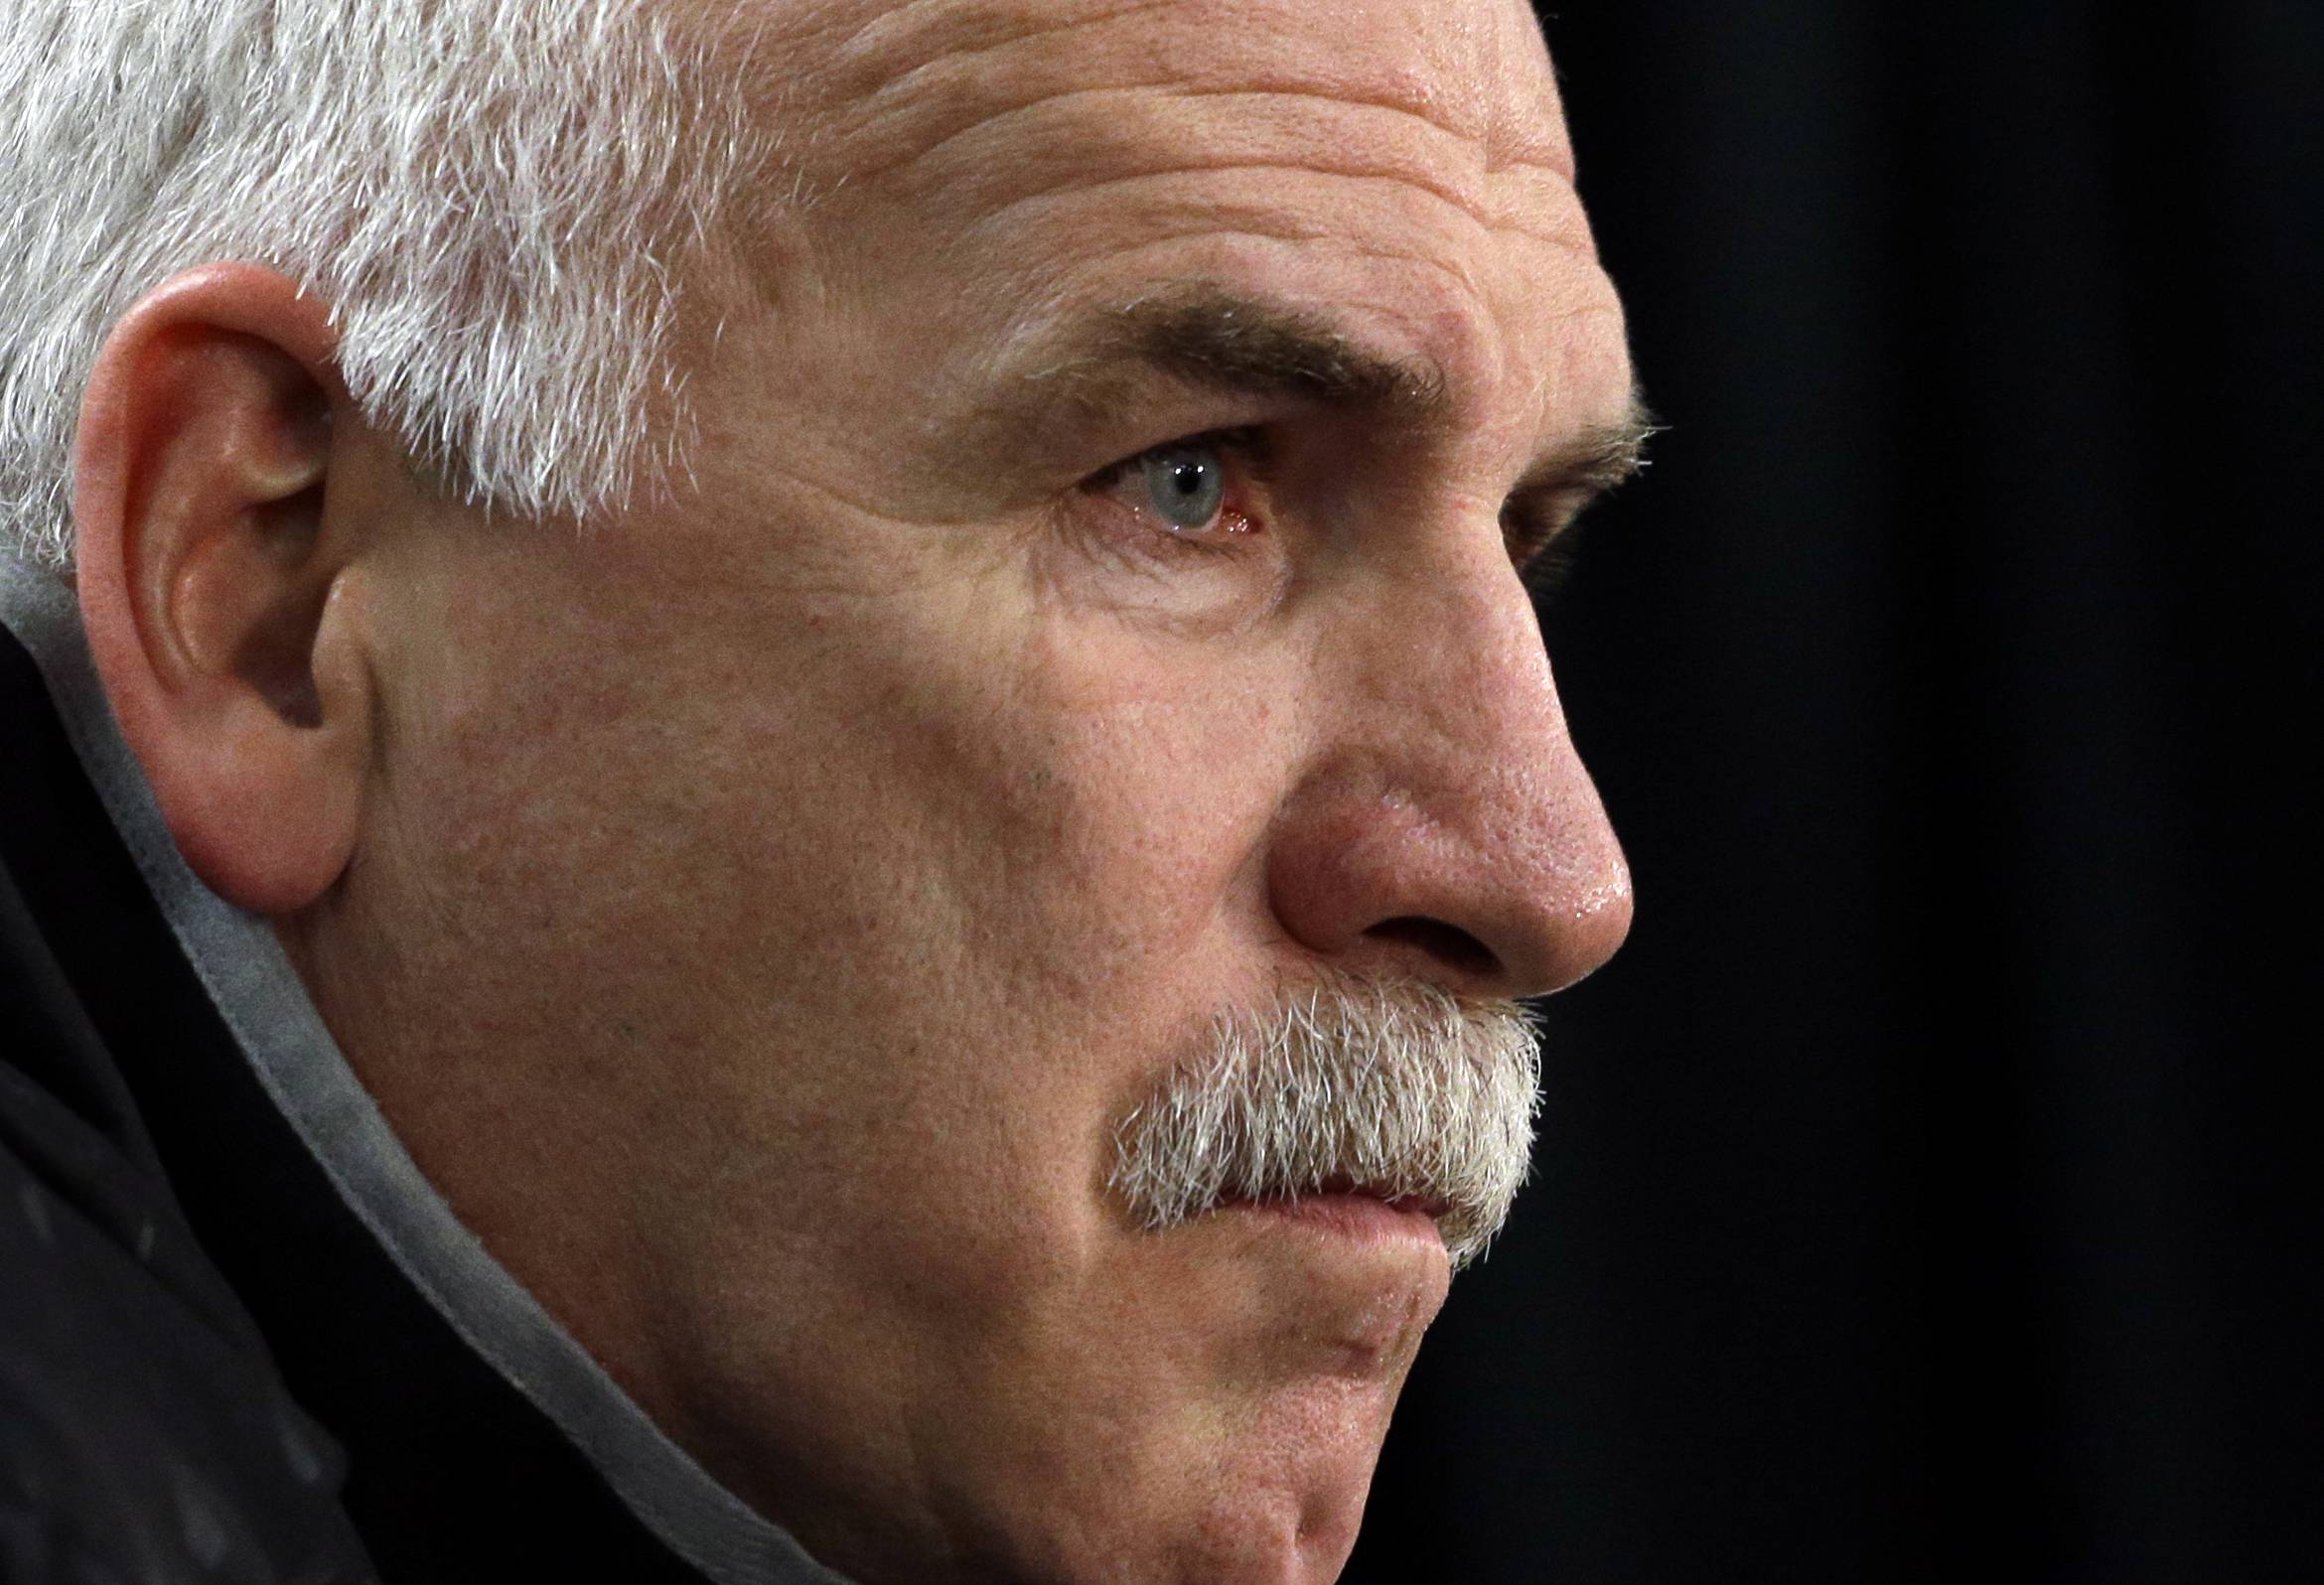 Chicago Blackhawks head coach Joel Quenneville said the NHL told him that the referees should not have reversed a first-period goal scored by Brandon Mashinter on Tuesday during the Blackhawks' 2-0 loss to San Jose at the United Center.